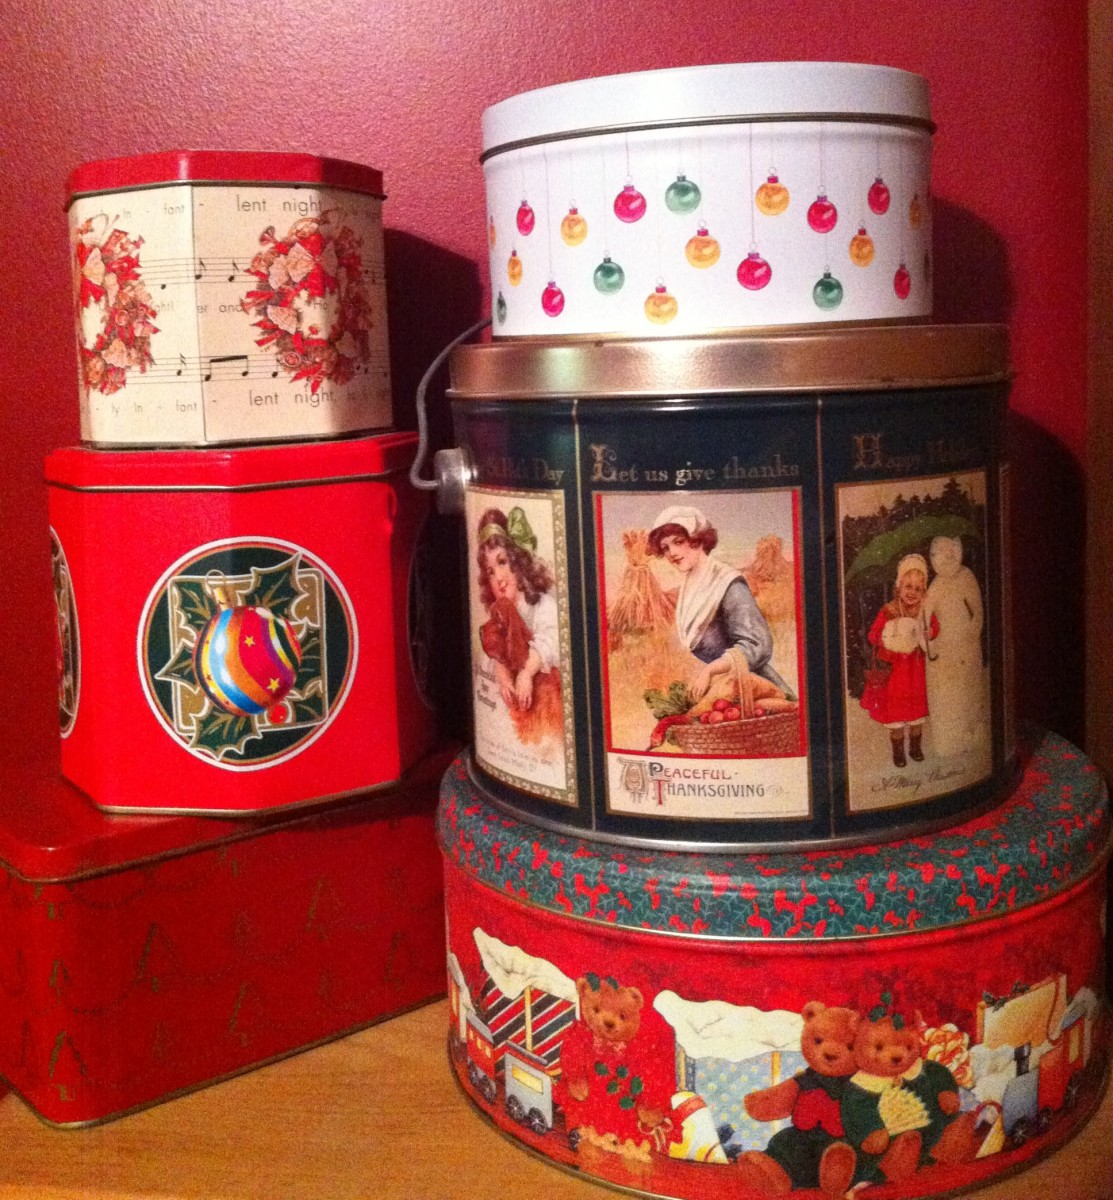 Decorative tins can be reused to wrap gifts year after year.